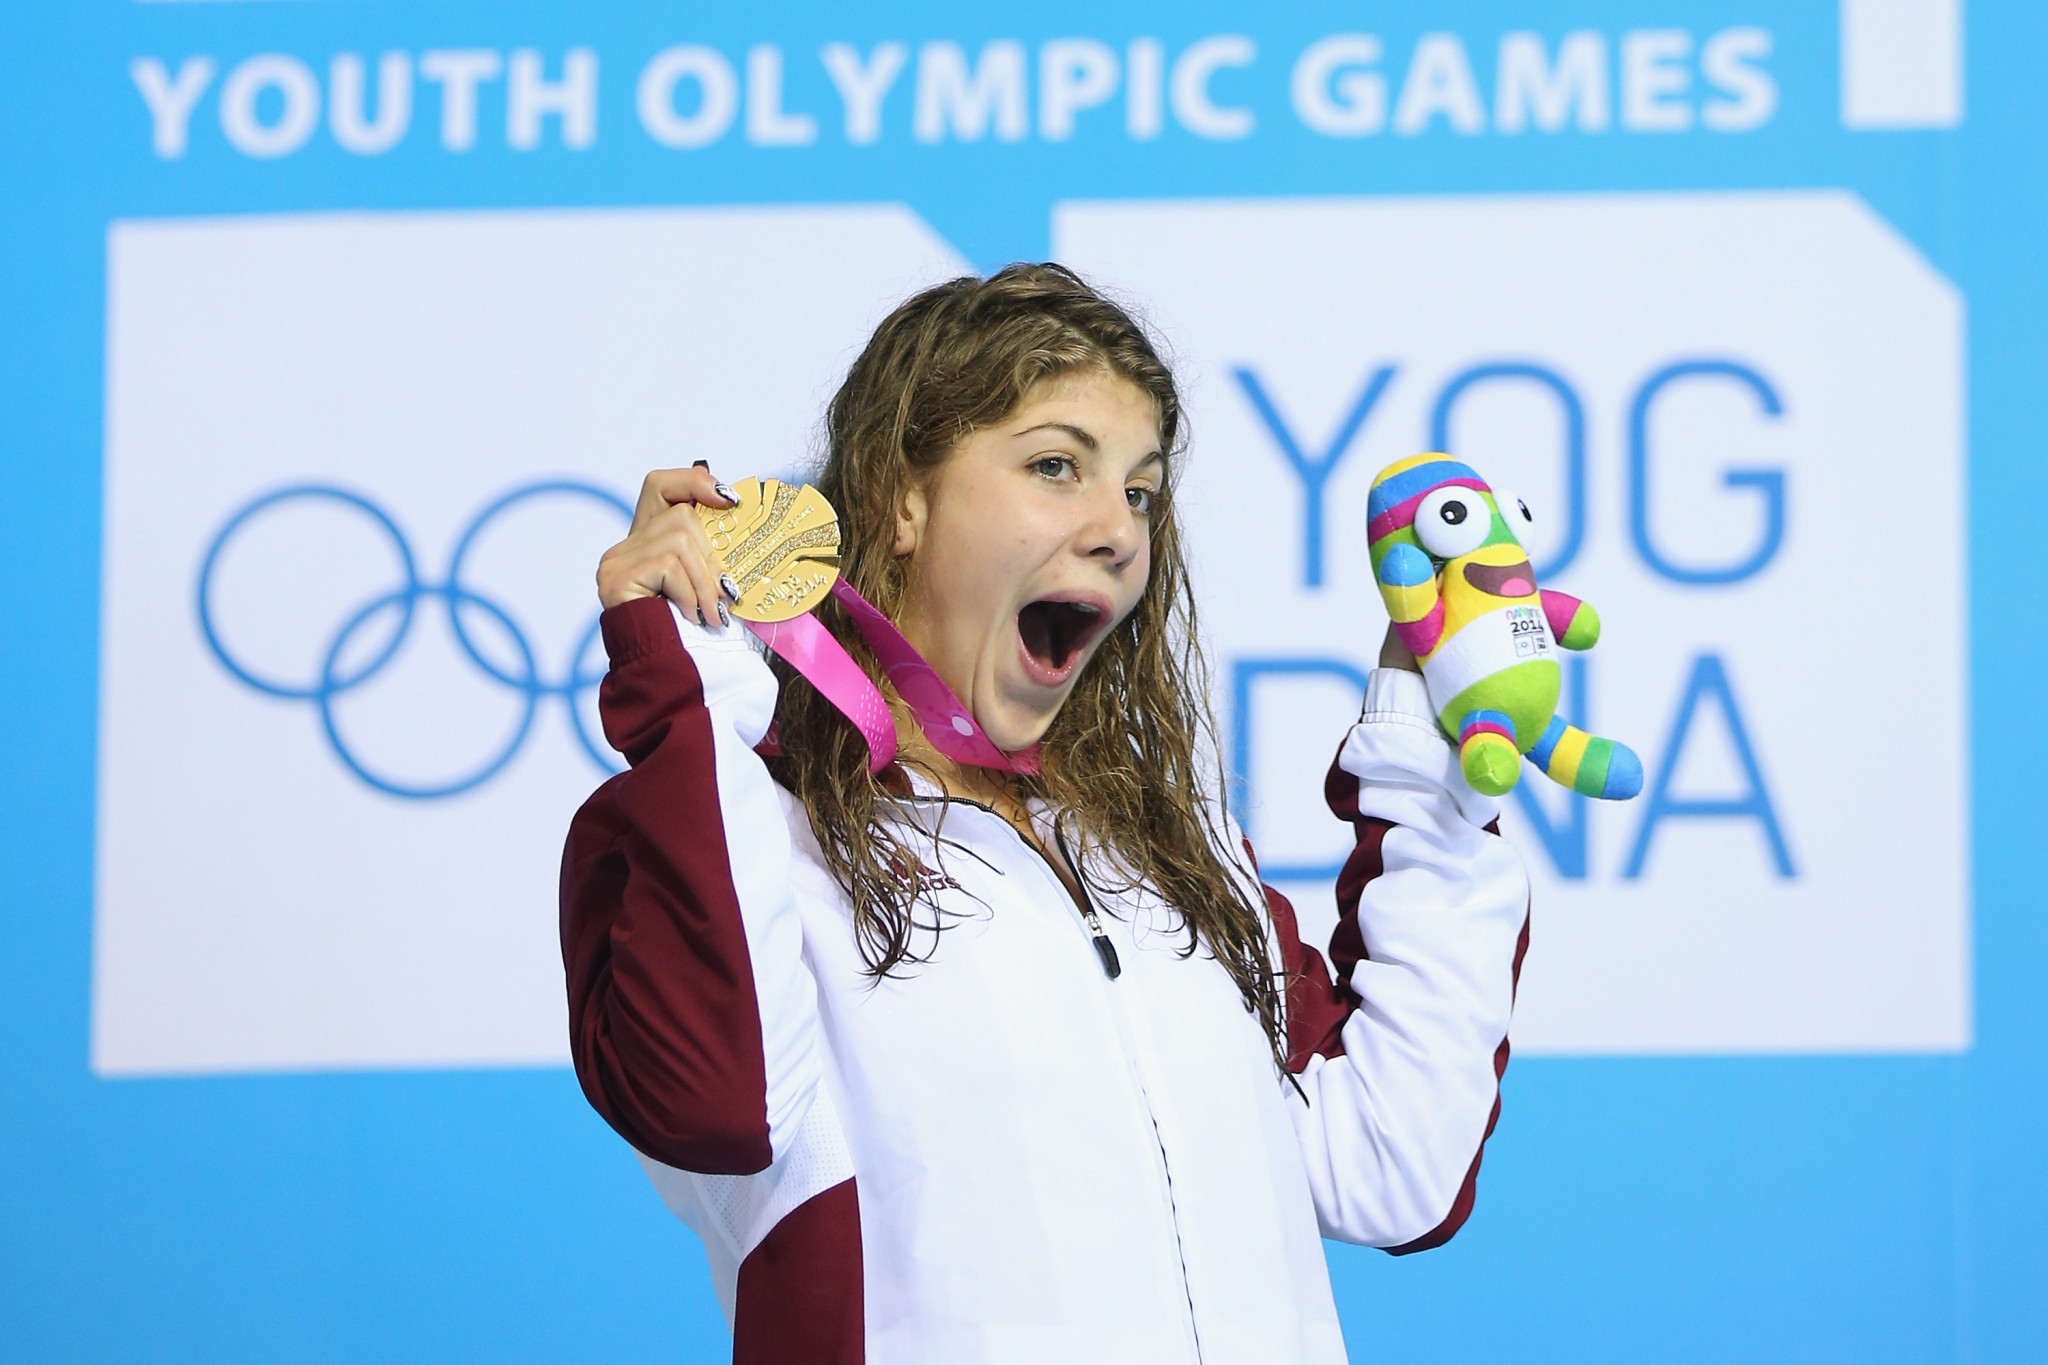 Liliána Szilágyi claimed two gold medals at the 2014 Youth Olympic Games ©Getty Images